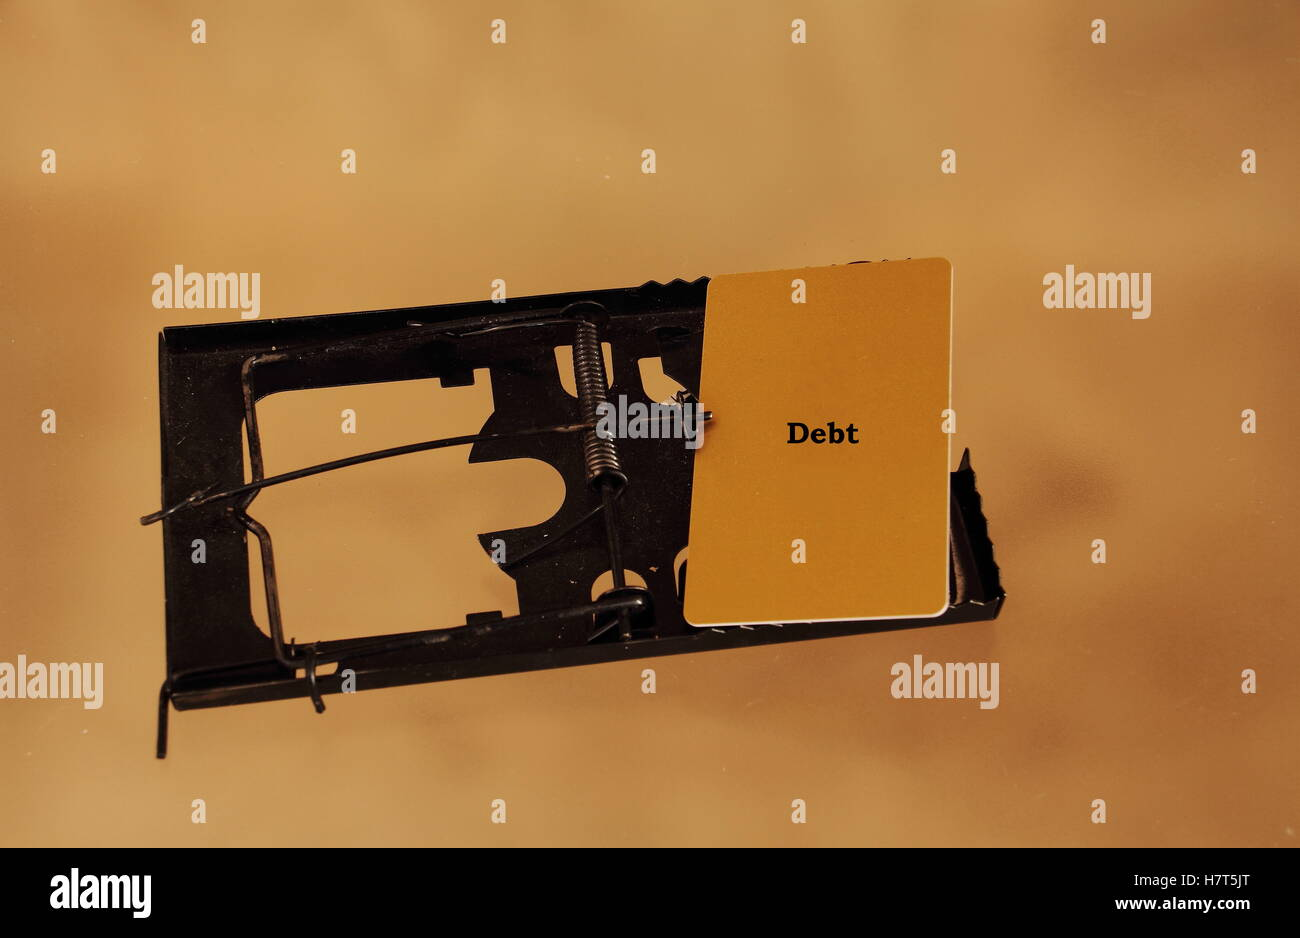 A credit card snared in a rat trap concept the debt trap image with copy space - Stock Image